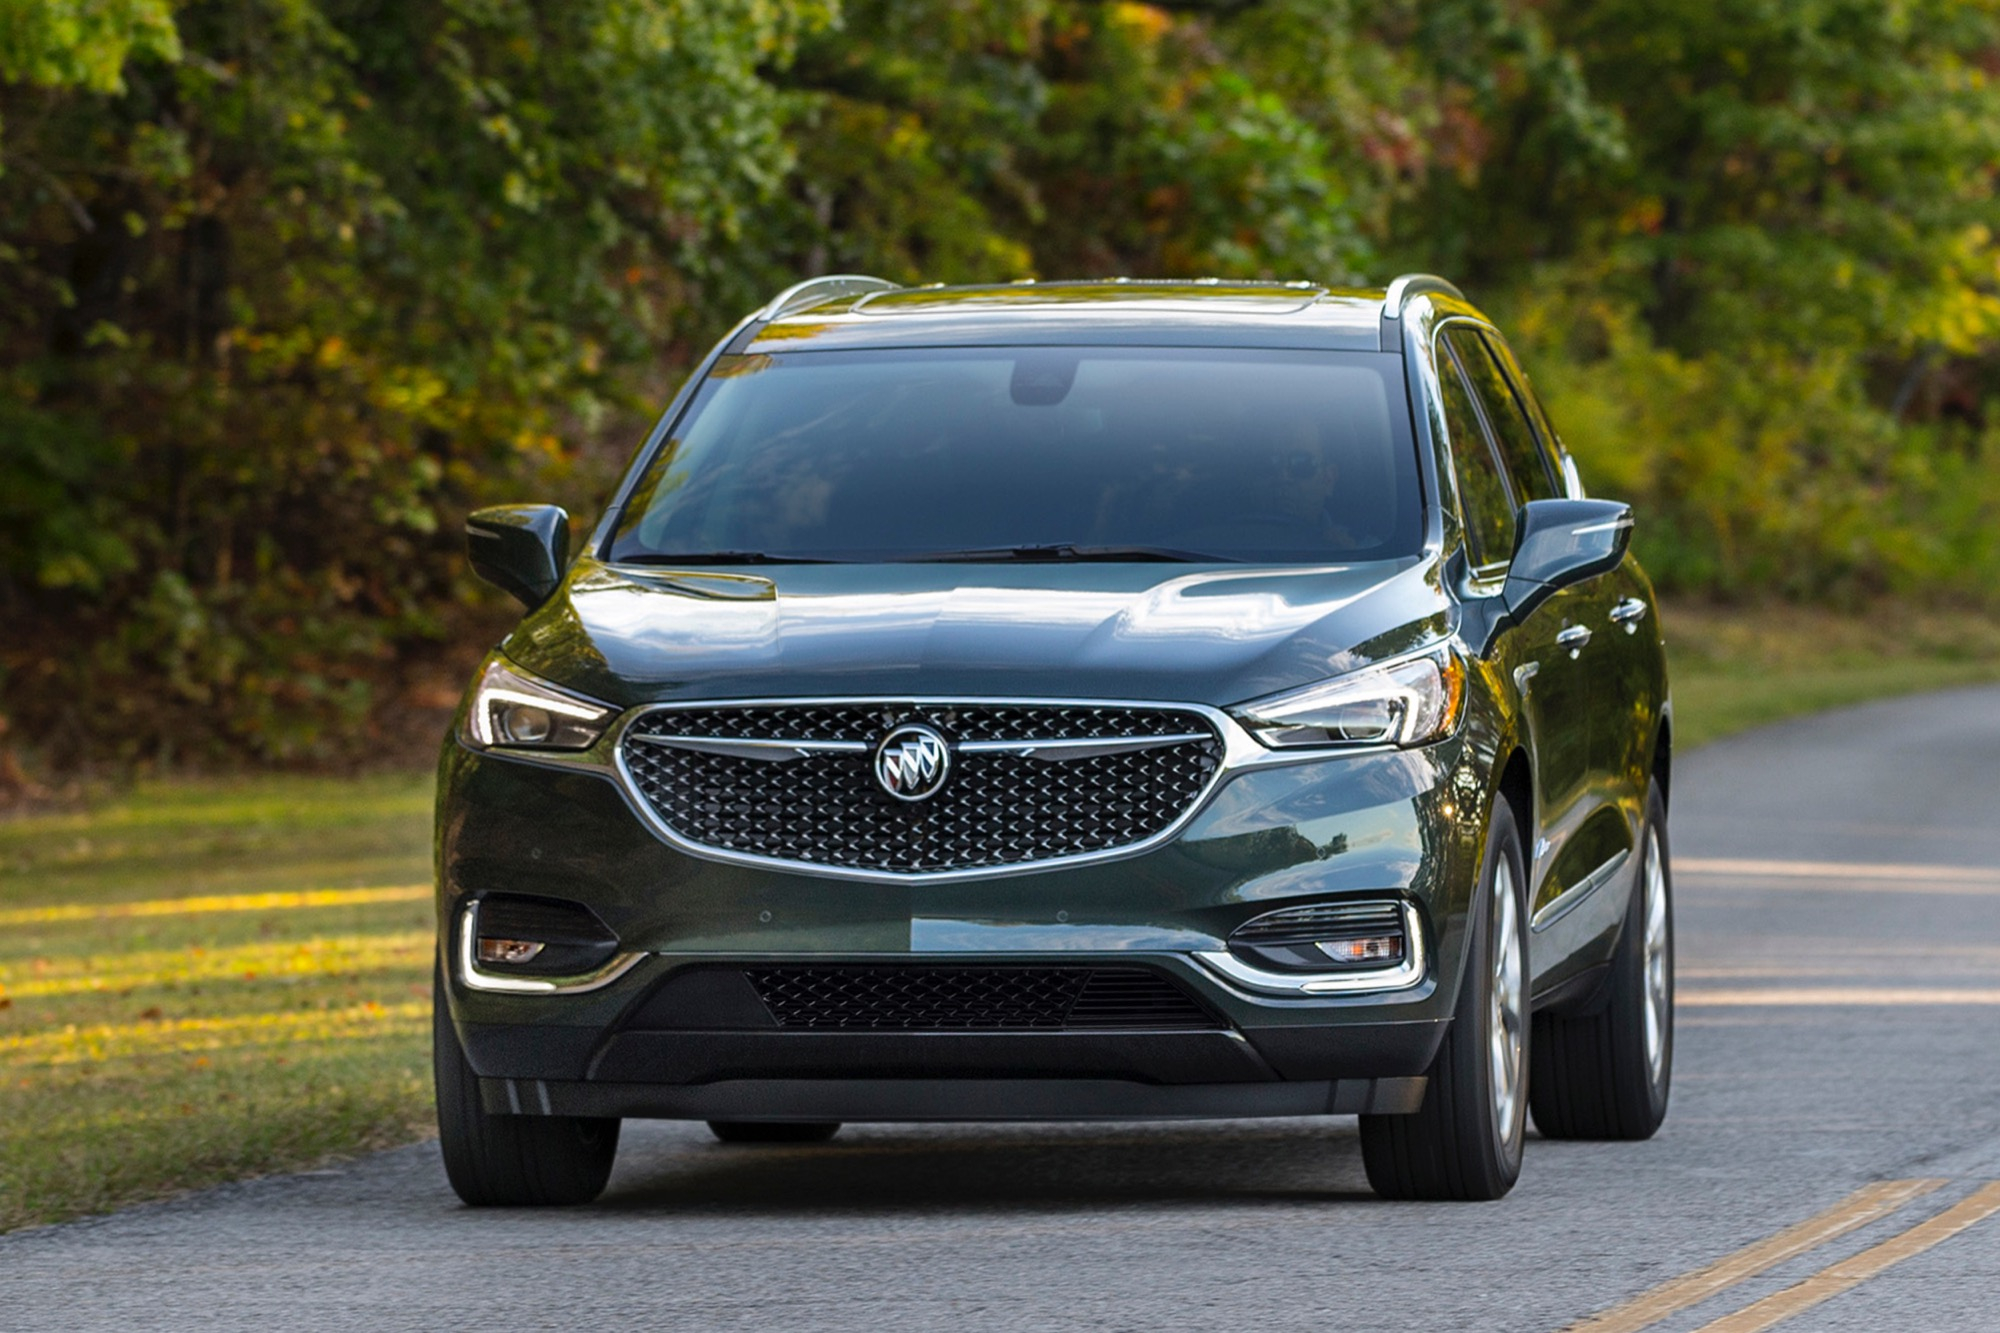 Buyers Don't Care That The Buick Enclave Doesn't Have The 2022 Buick Enclave Trims, Transmission Problems, Used